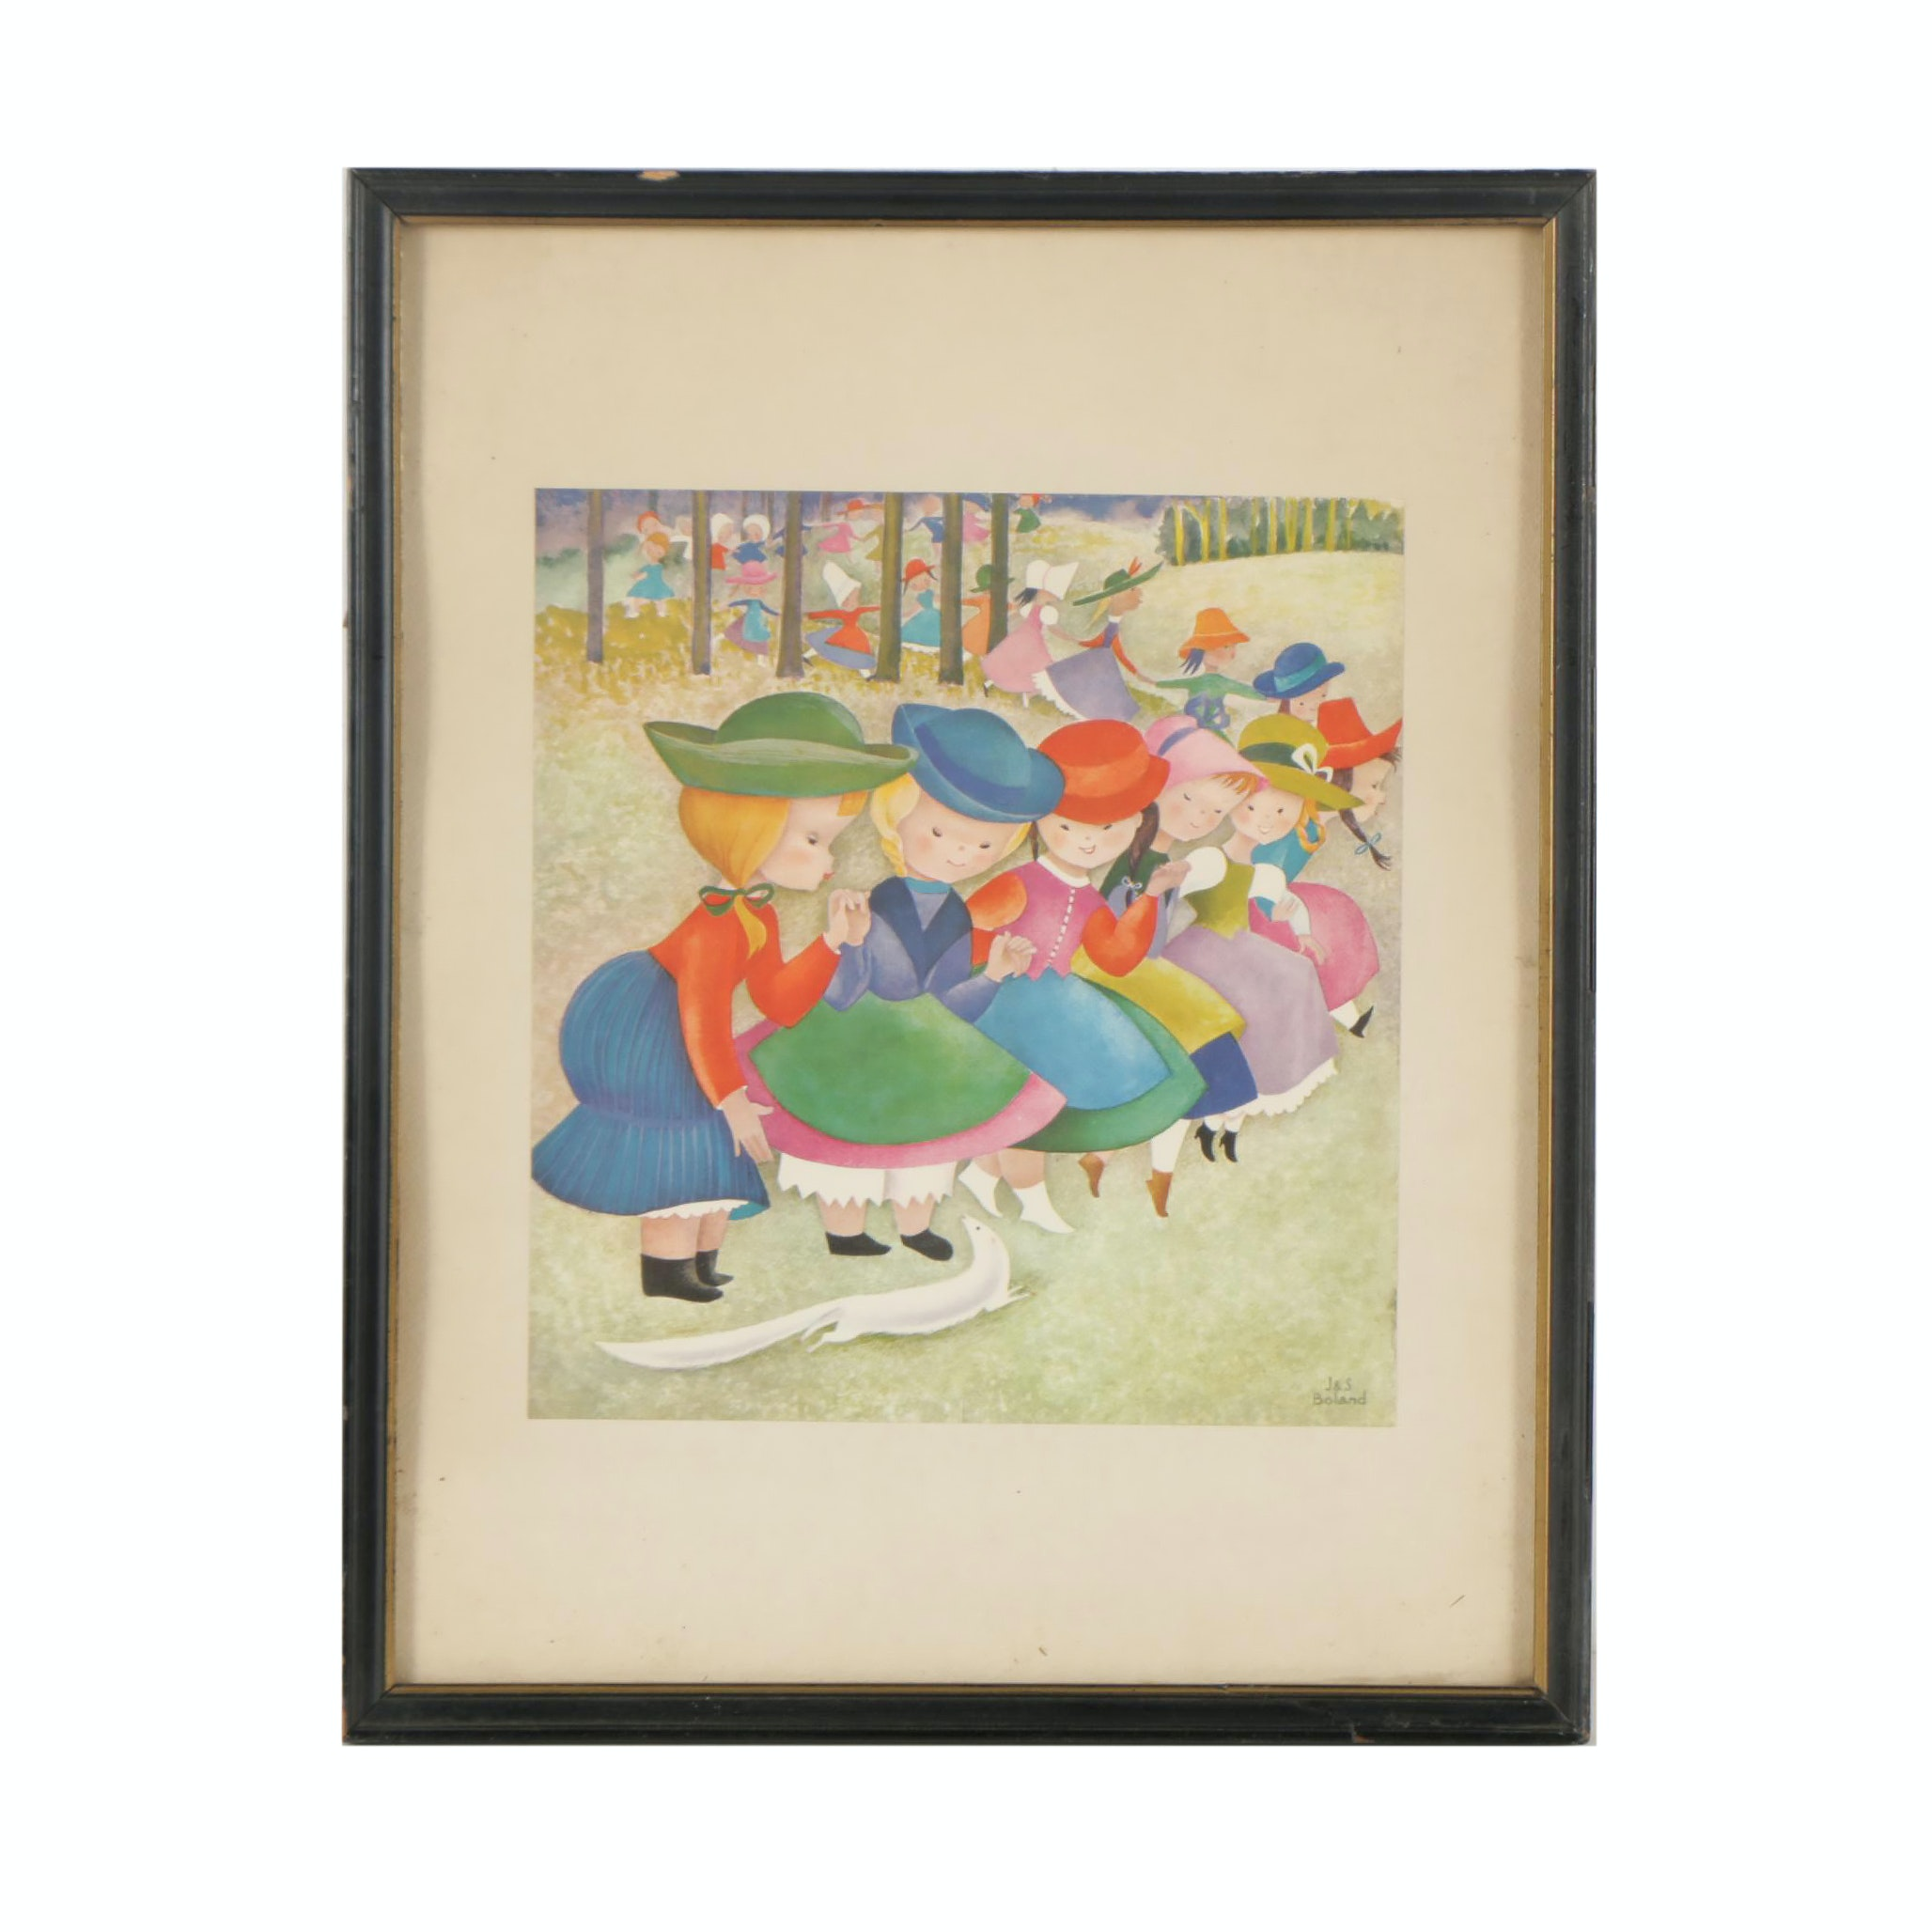 J & S Boland Offset Lithograph